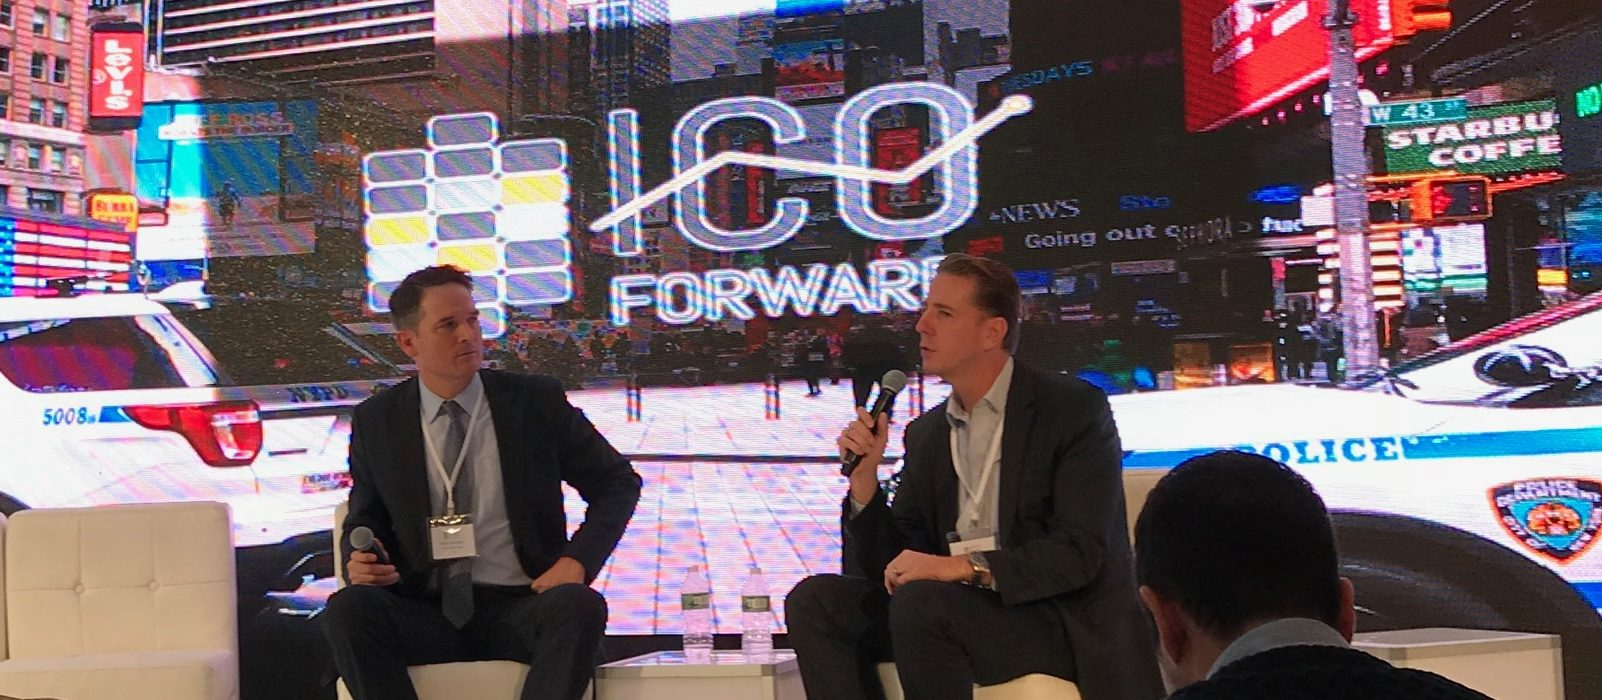 Nick Morgan, attorney at Paul Hastings, and R. Scott Forston, of S&P Global's compliance team, converse on stage at ICO Forward Photo by Brady Dale.